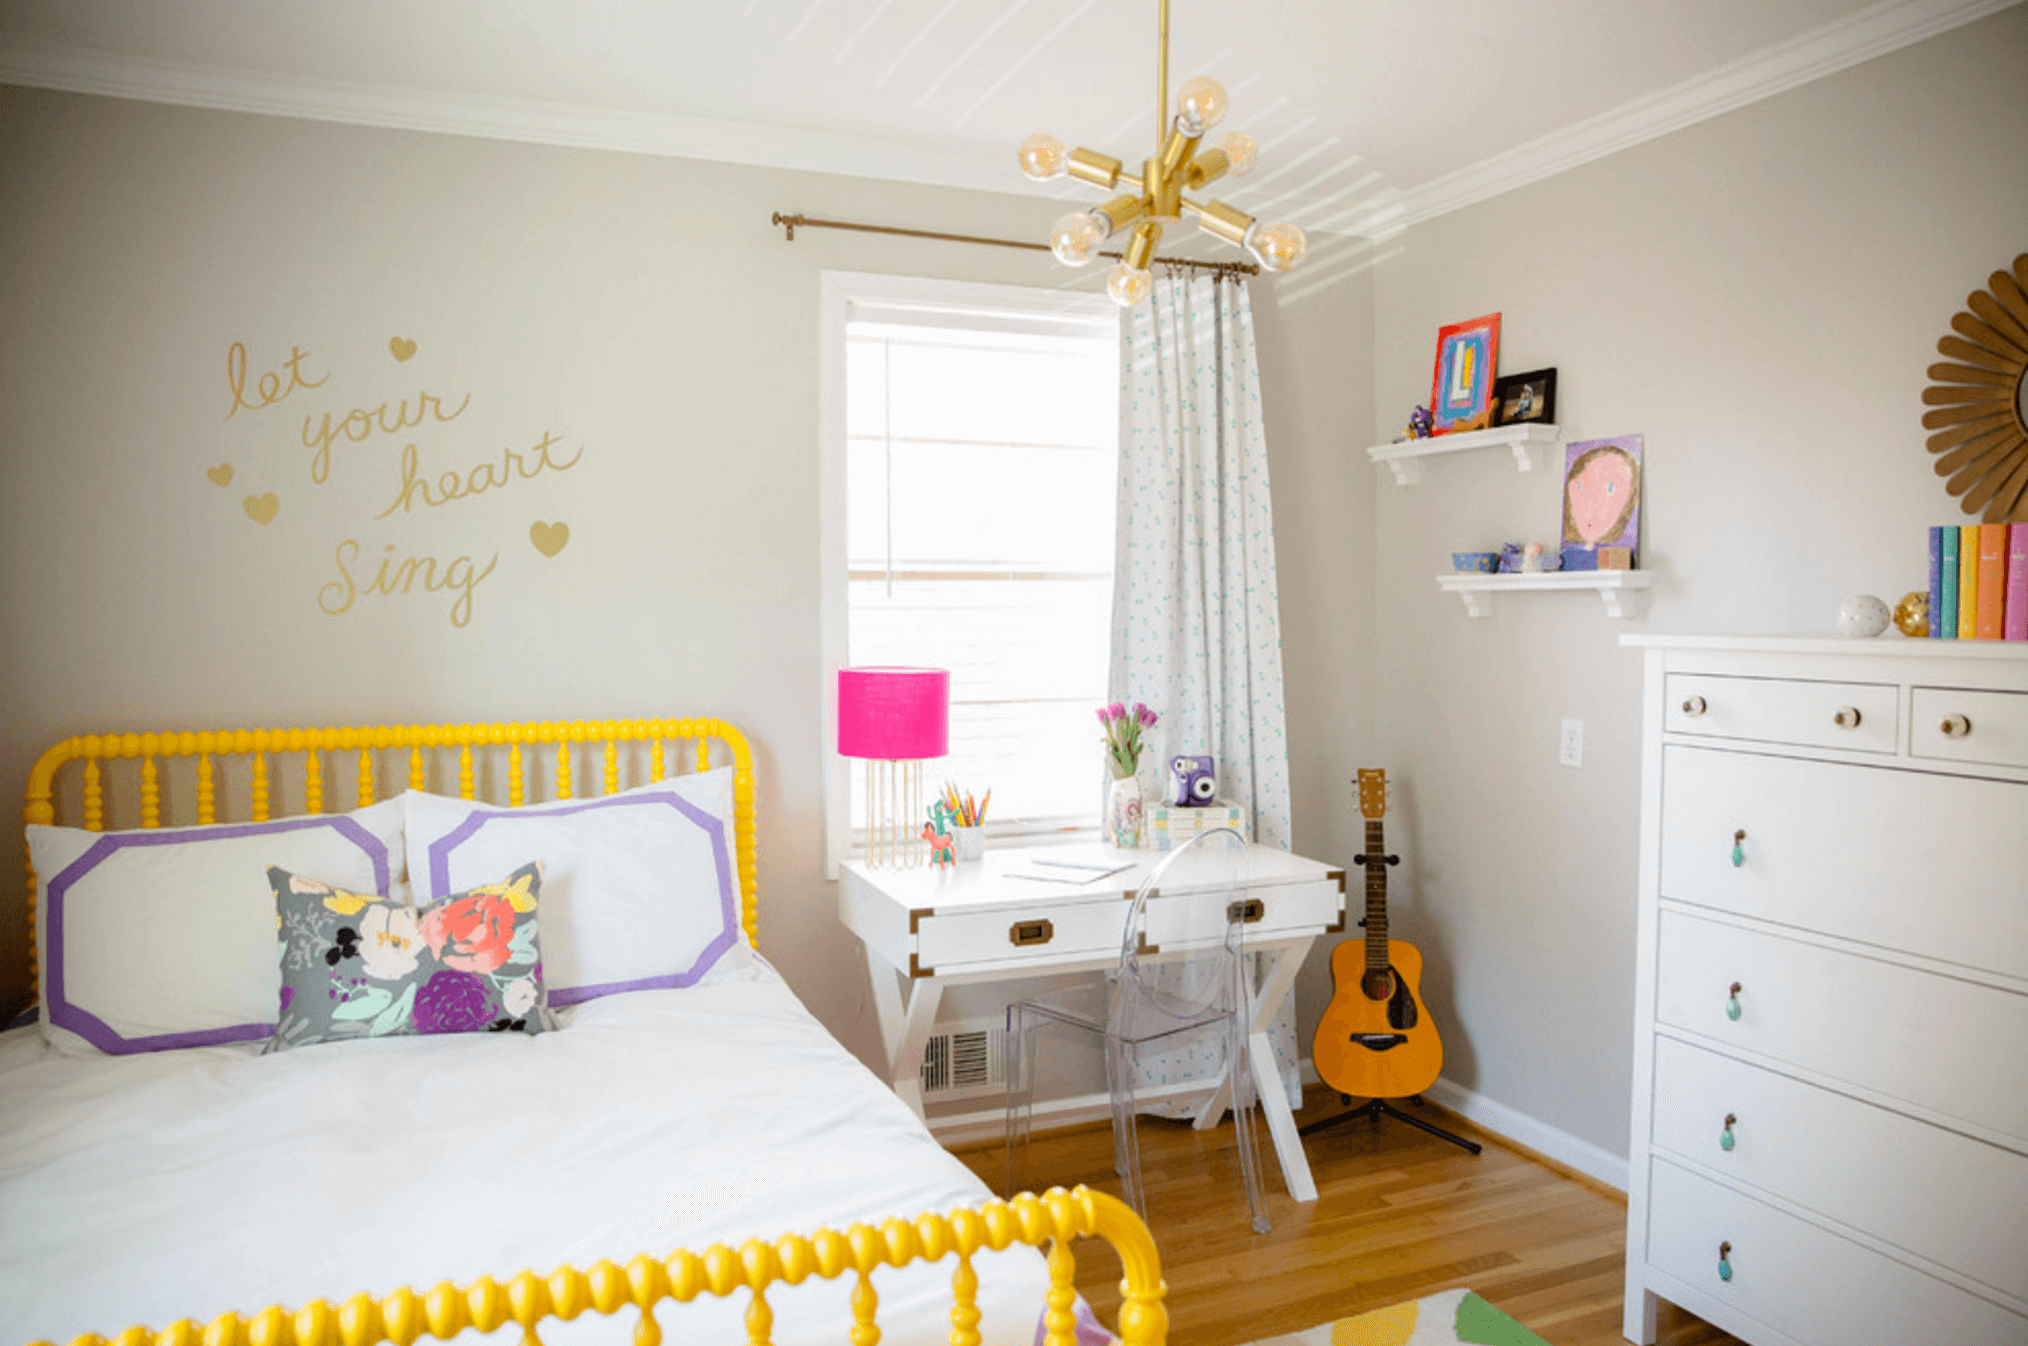 28 Ideas For Adding Color To A Kids Room Freshome Com 174